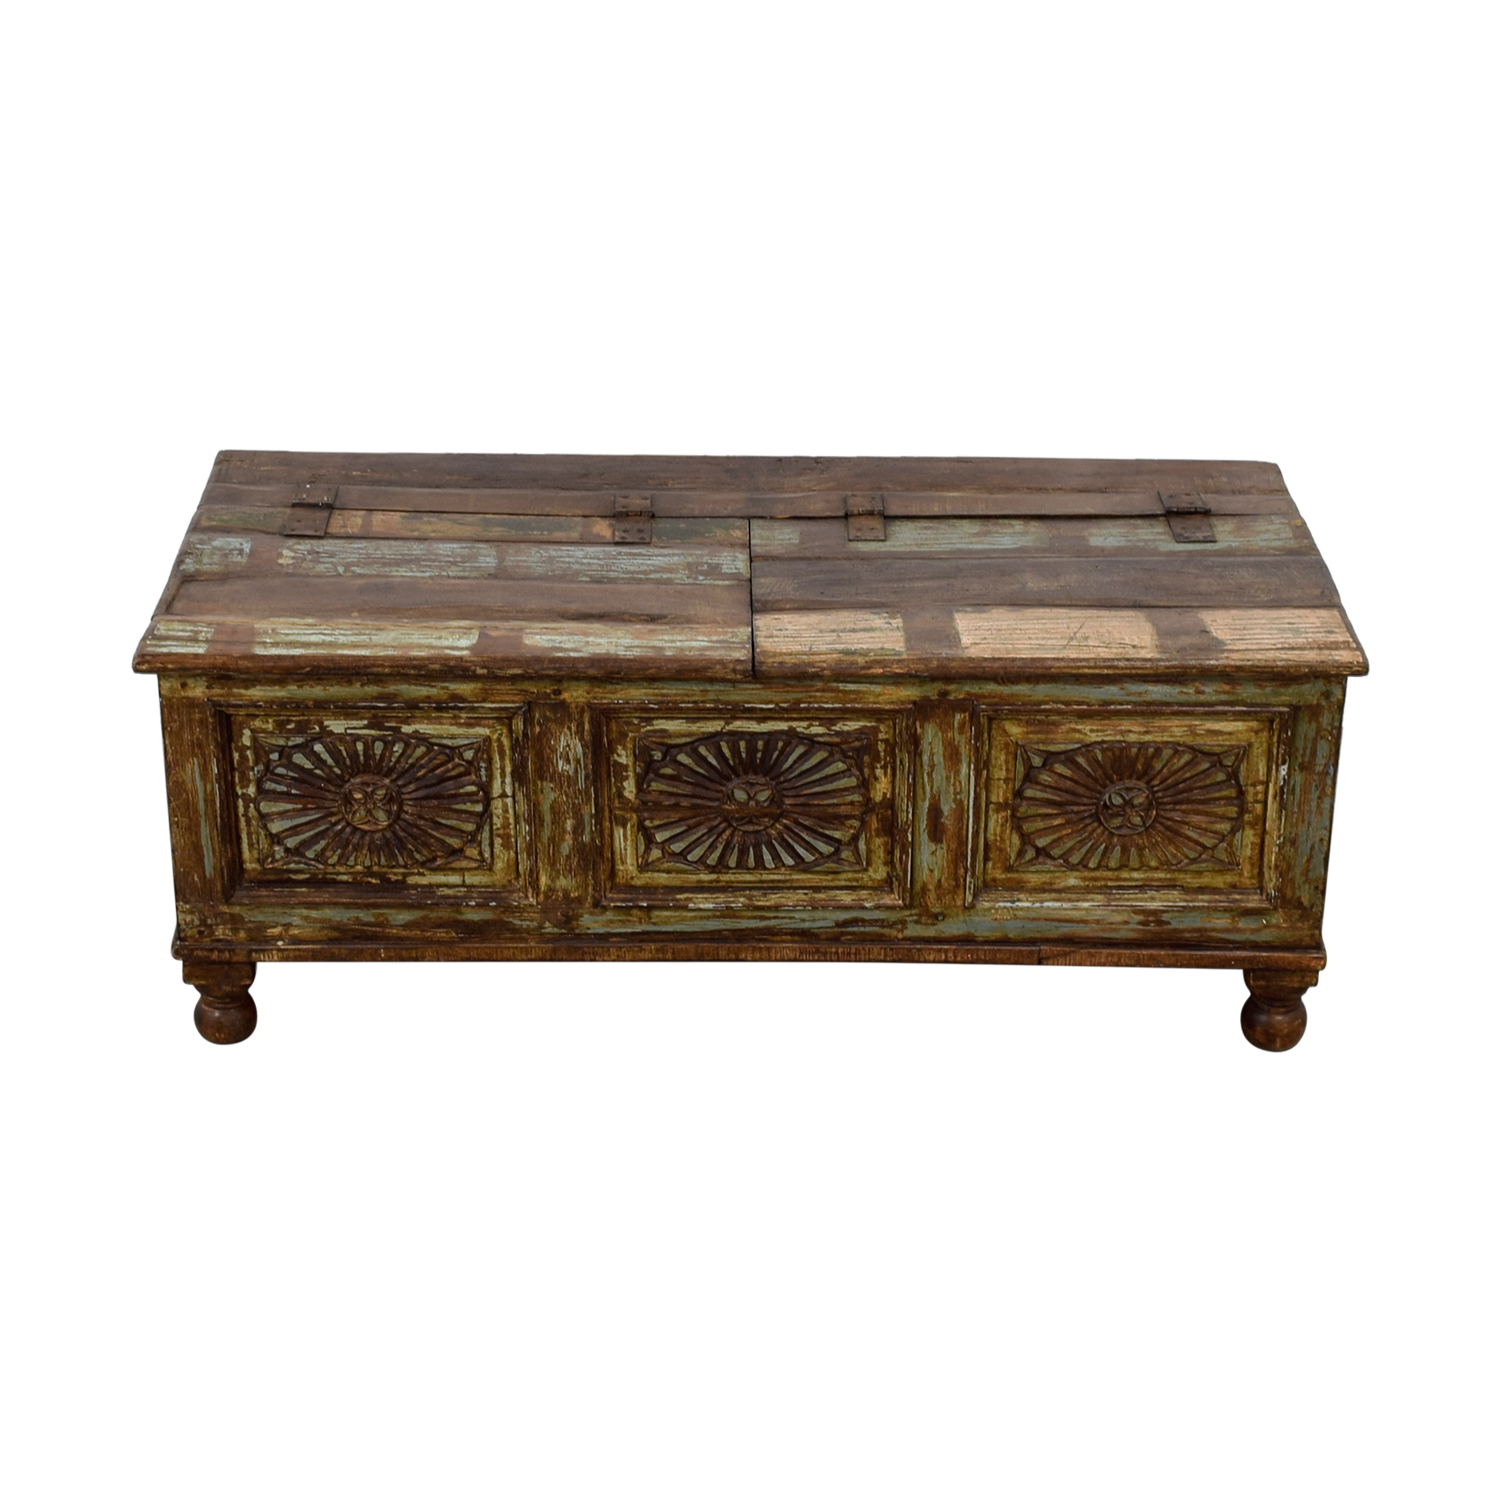 Vintage Carved Rustic Wood Storage Coffee Table